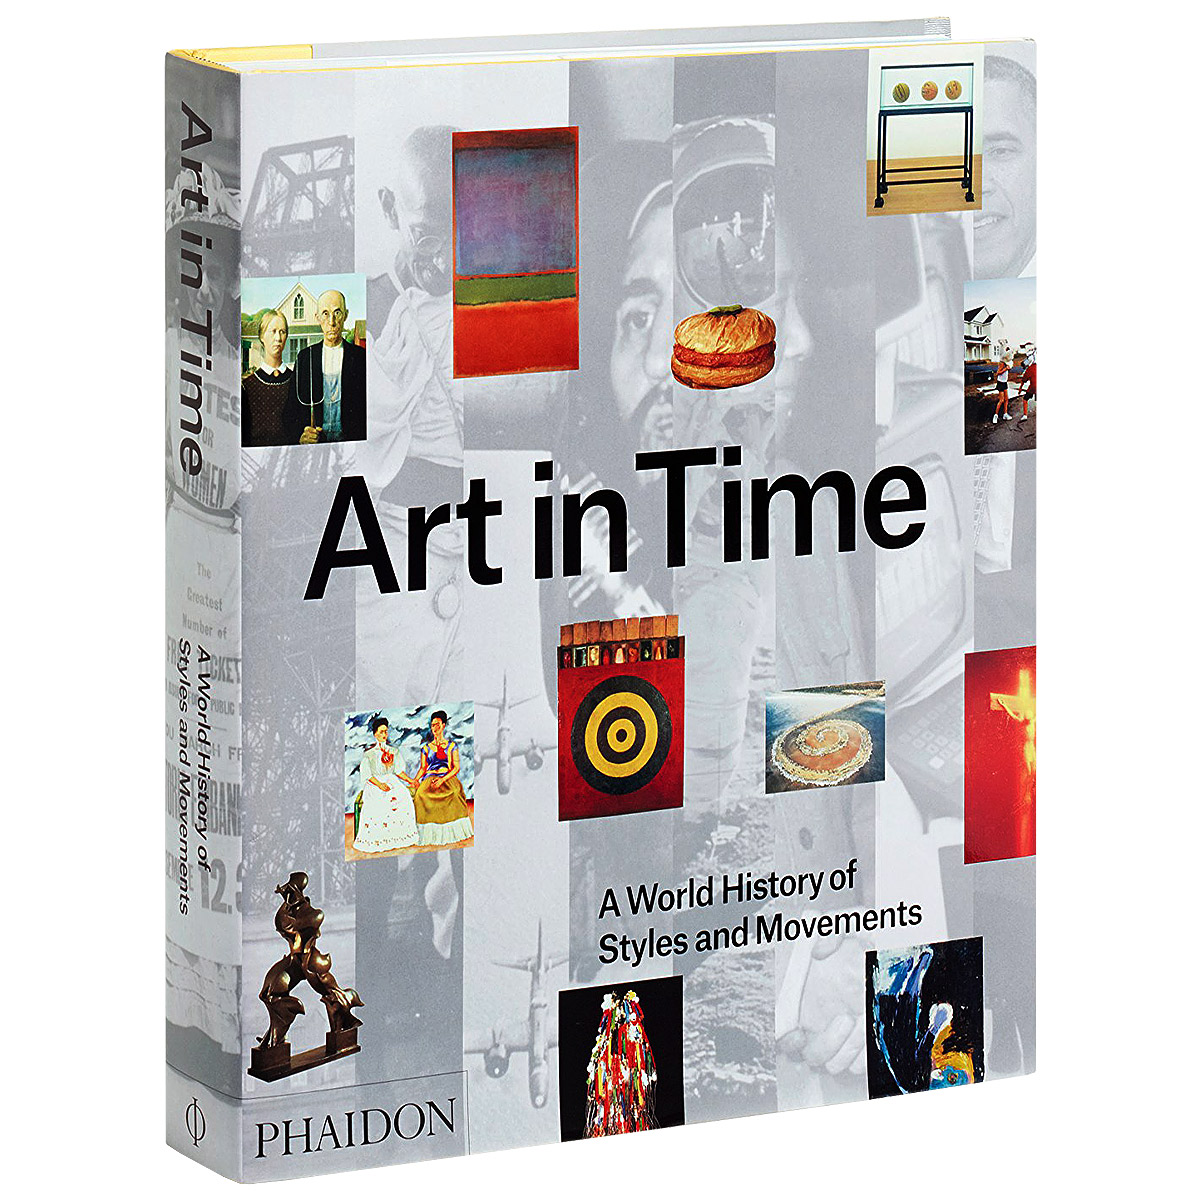 Art in Time: A World History of Styles and Movements pamela fossen errol morris and the art of history